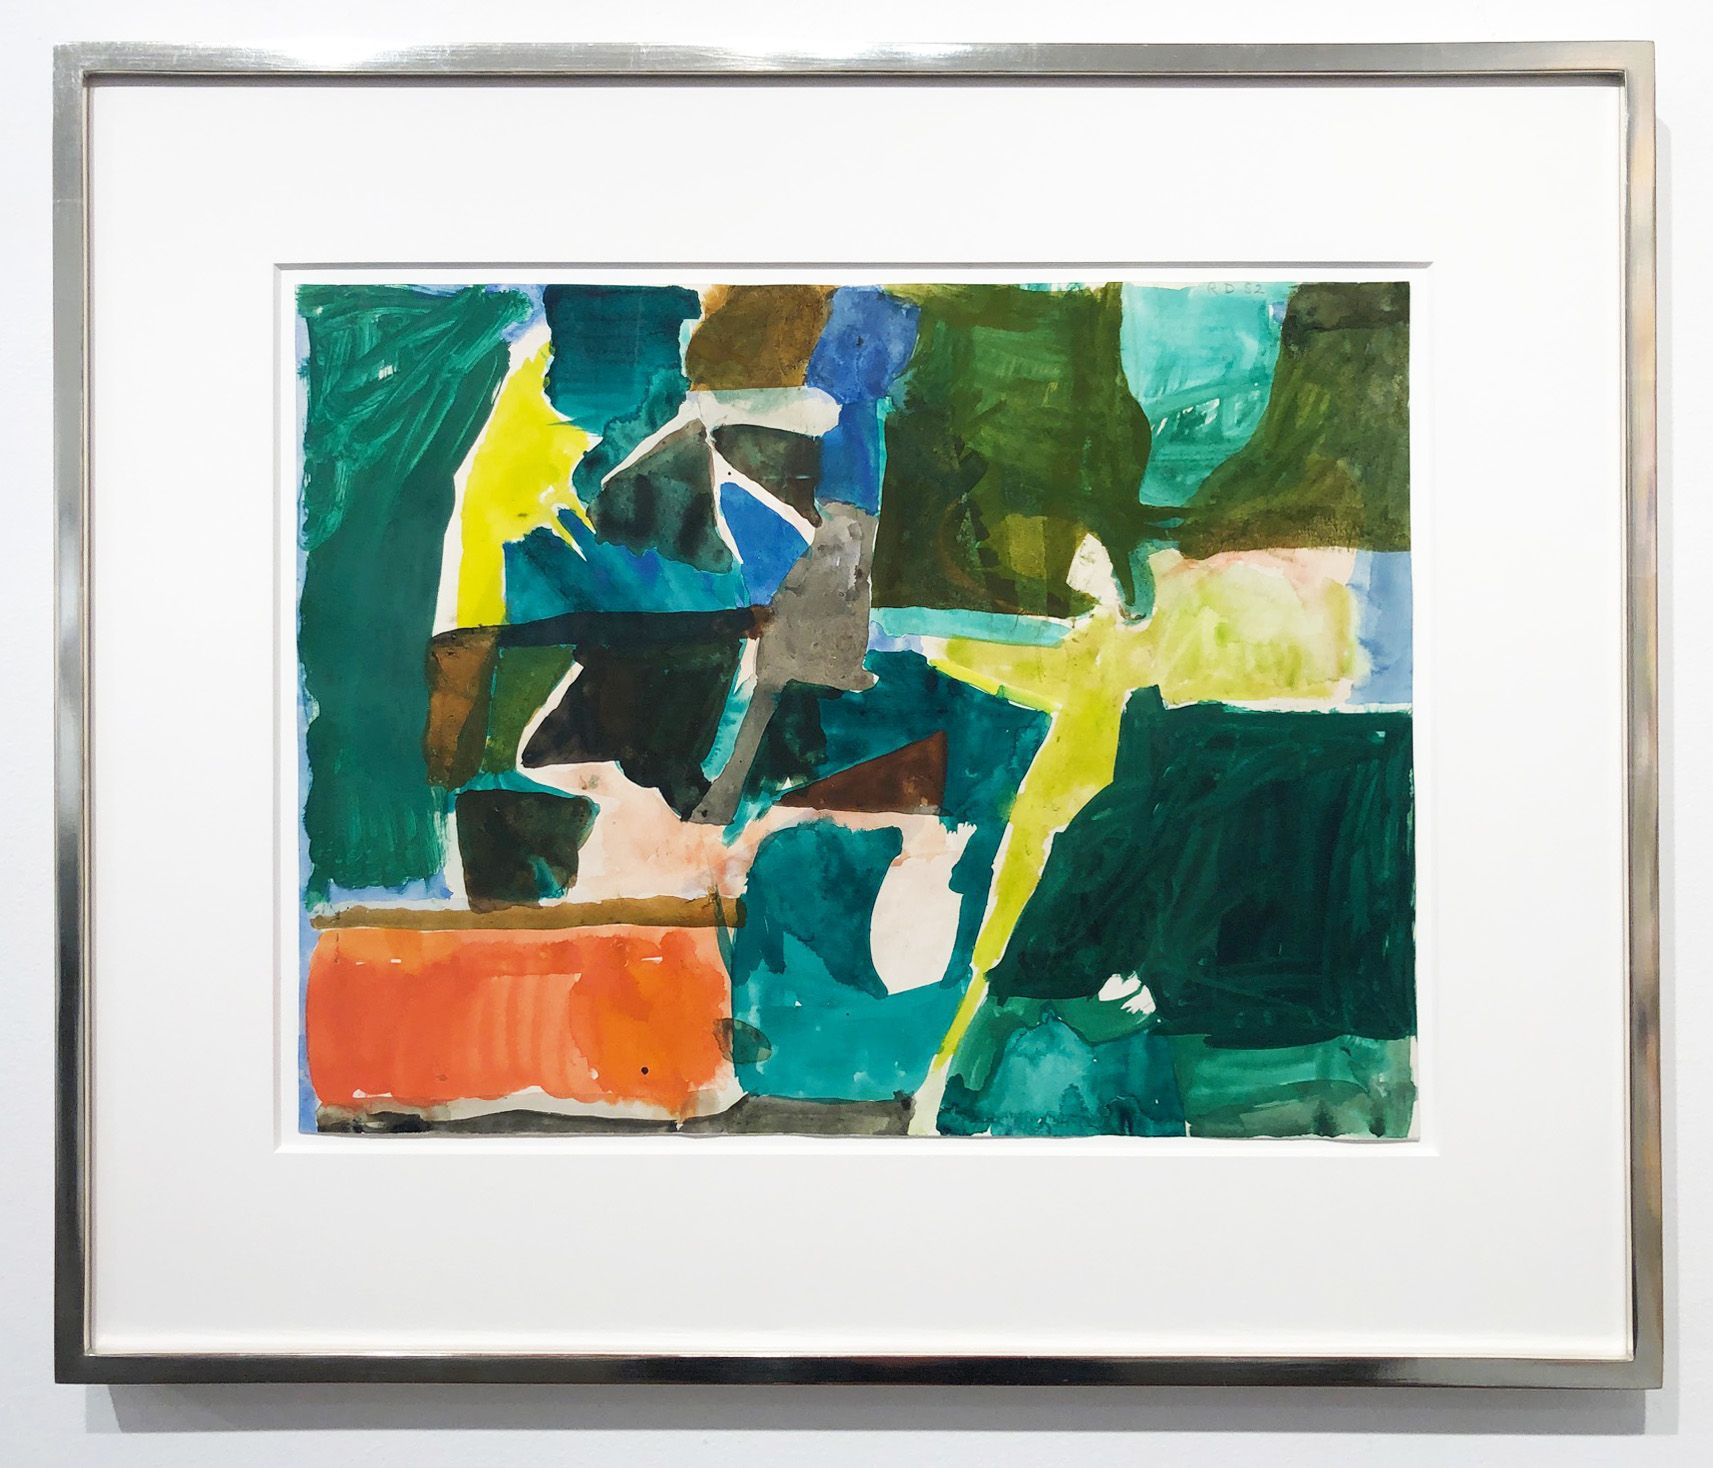 Richard Diebenkorn, Untitled, 1952